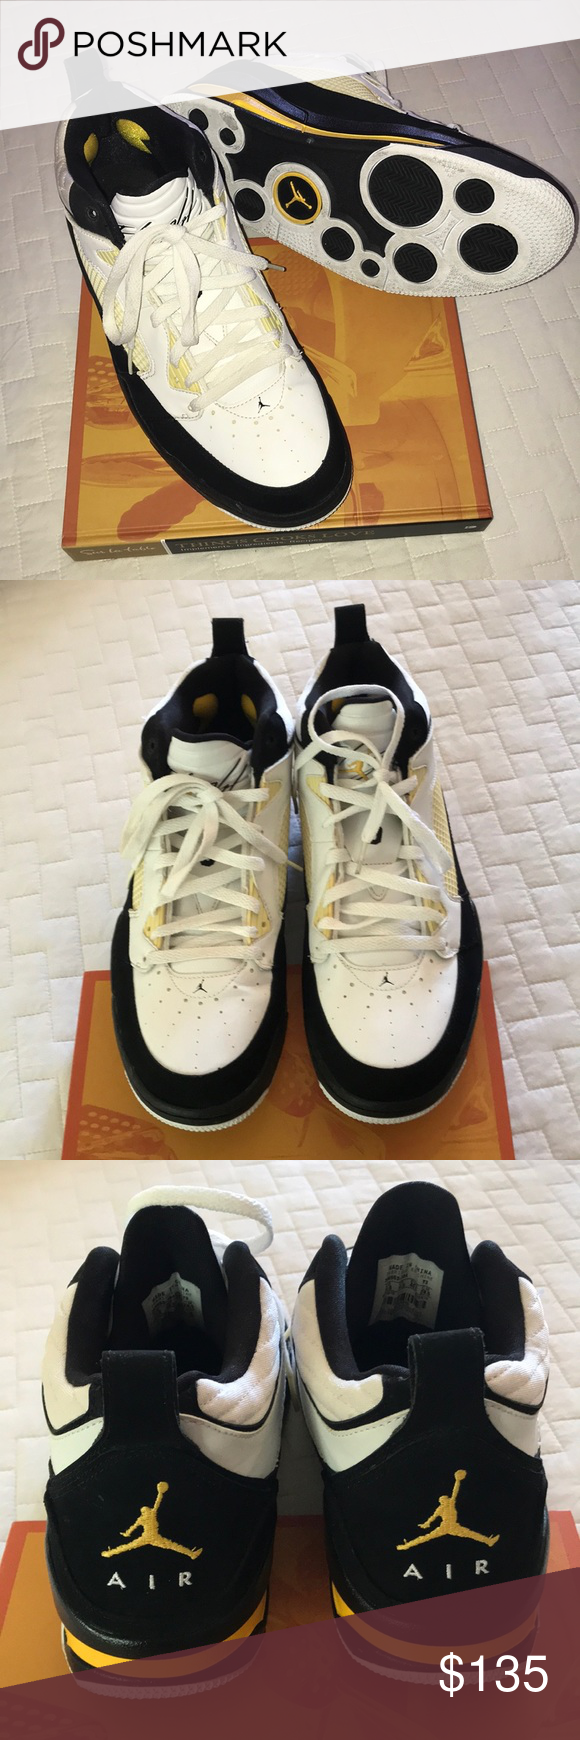 2e8d80f7b5b Air Jordan's Flight 9 Shoes Air Jordan Flight 9 Retro white/Black Varsity  Maize Black & white with yellow accents size US 11.5 my sons shoes cleaning  out ...